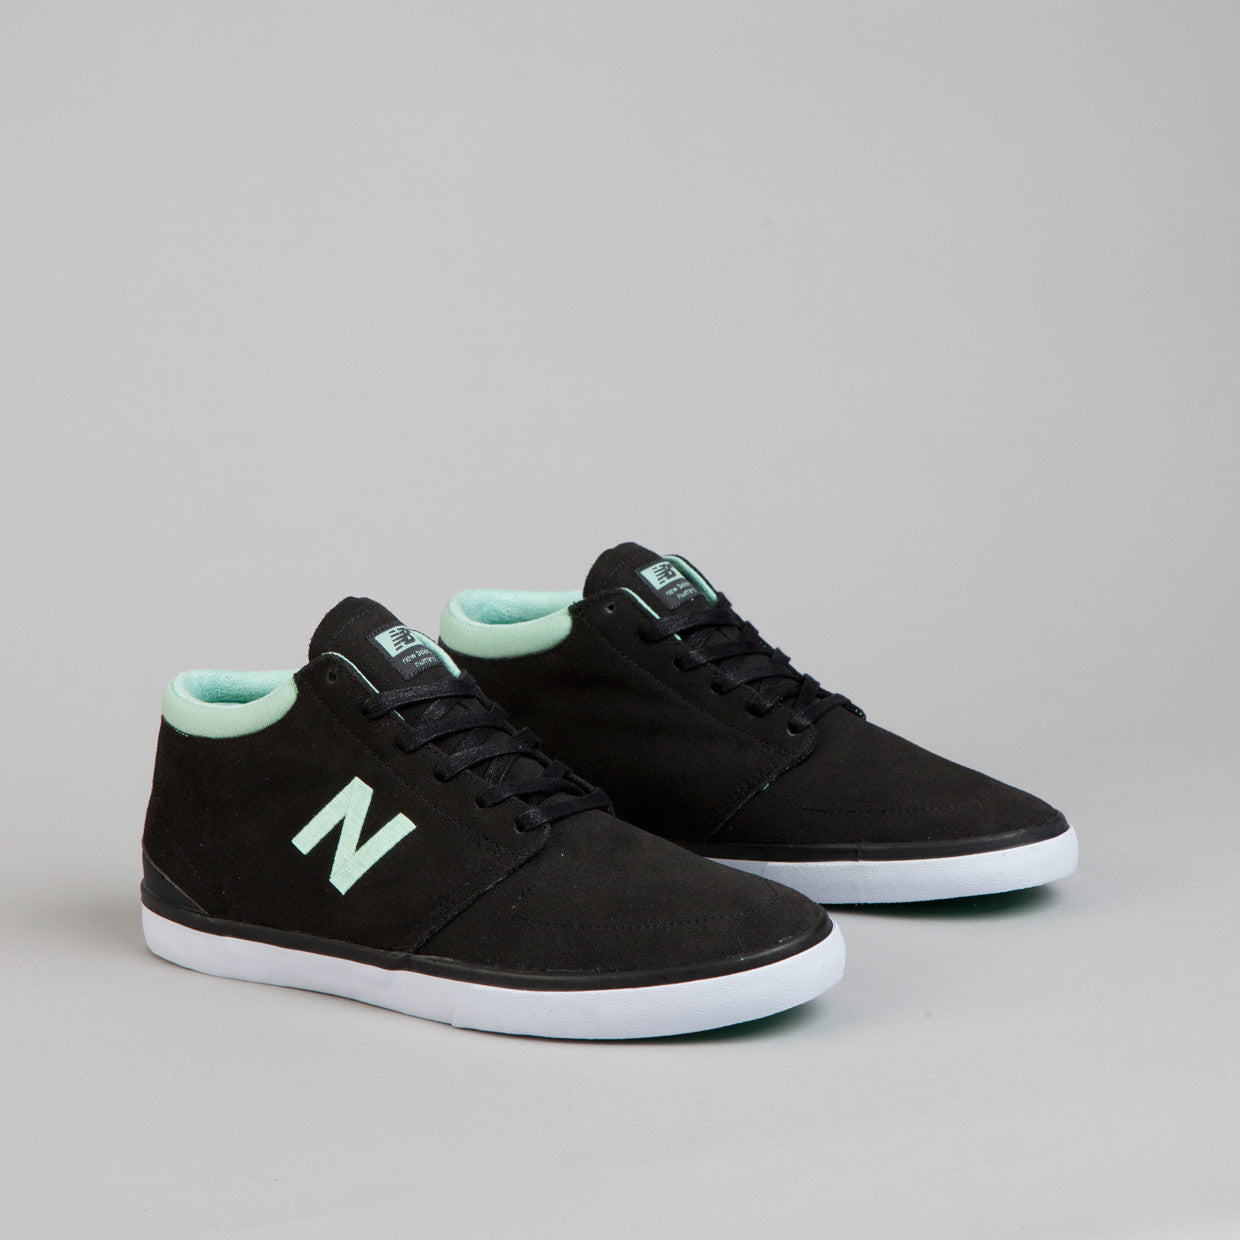 New Balance Numeric Brighton High 354 Pirate Black / Ice Green